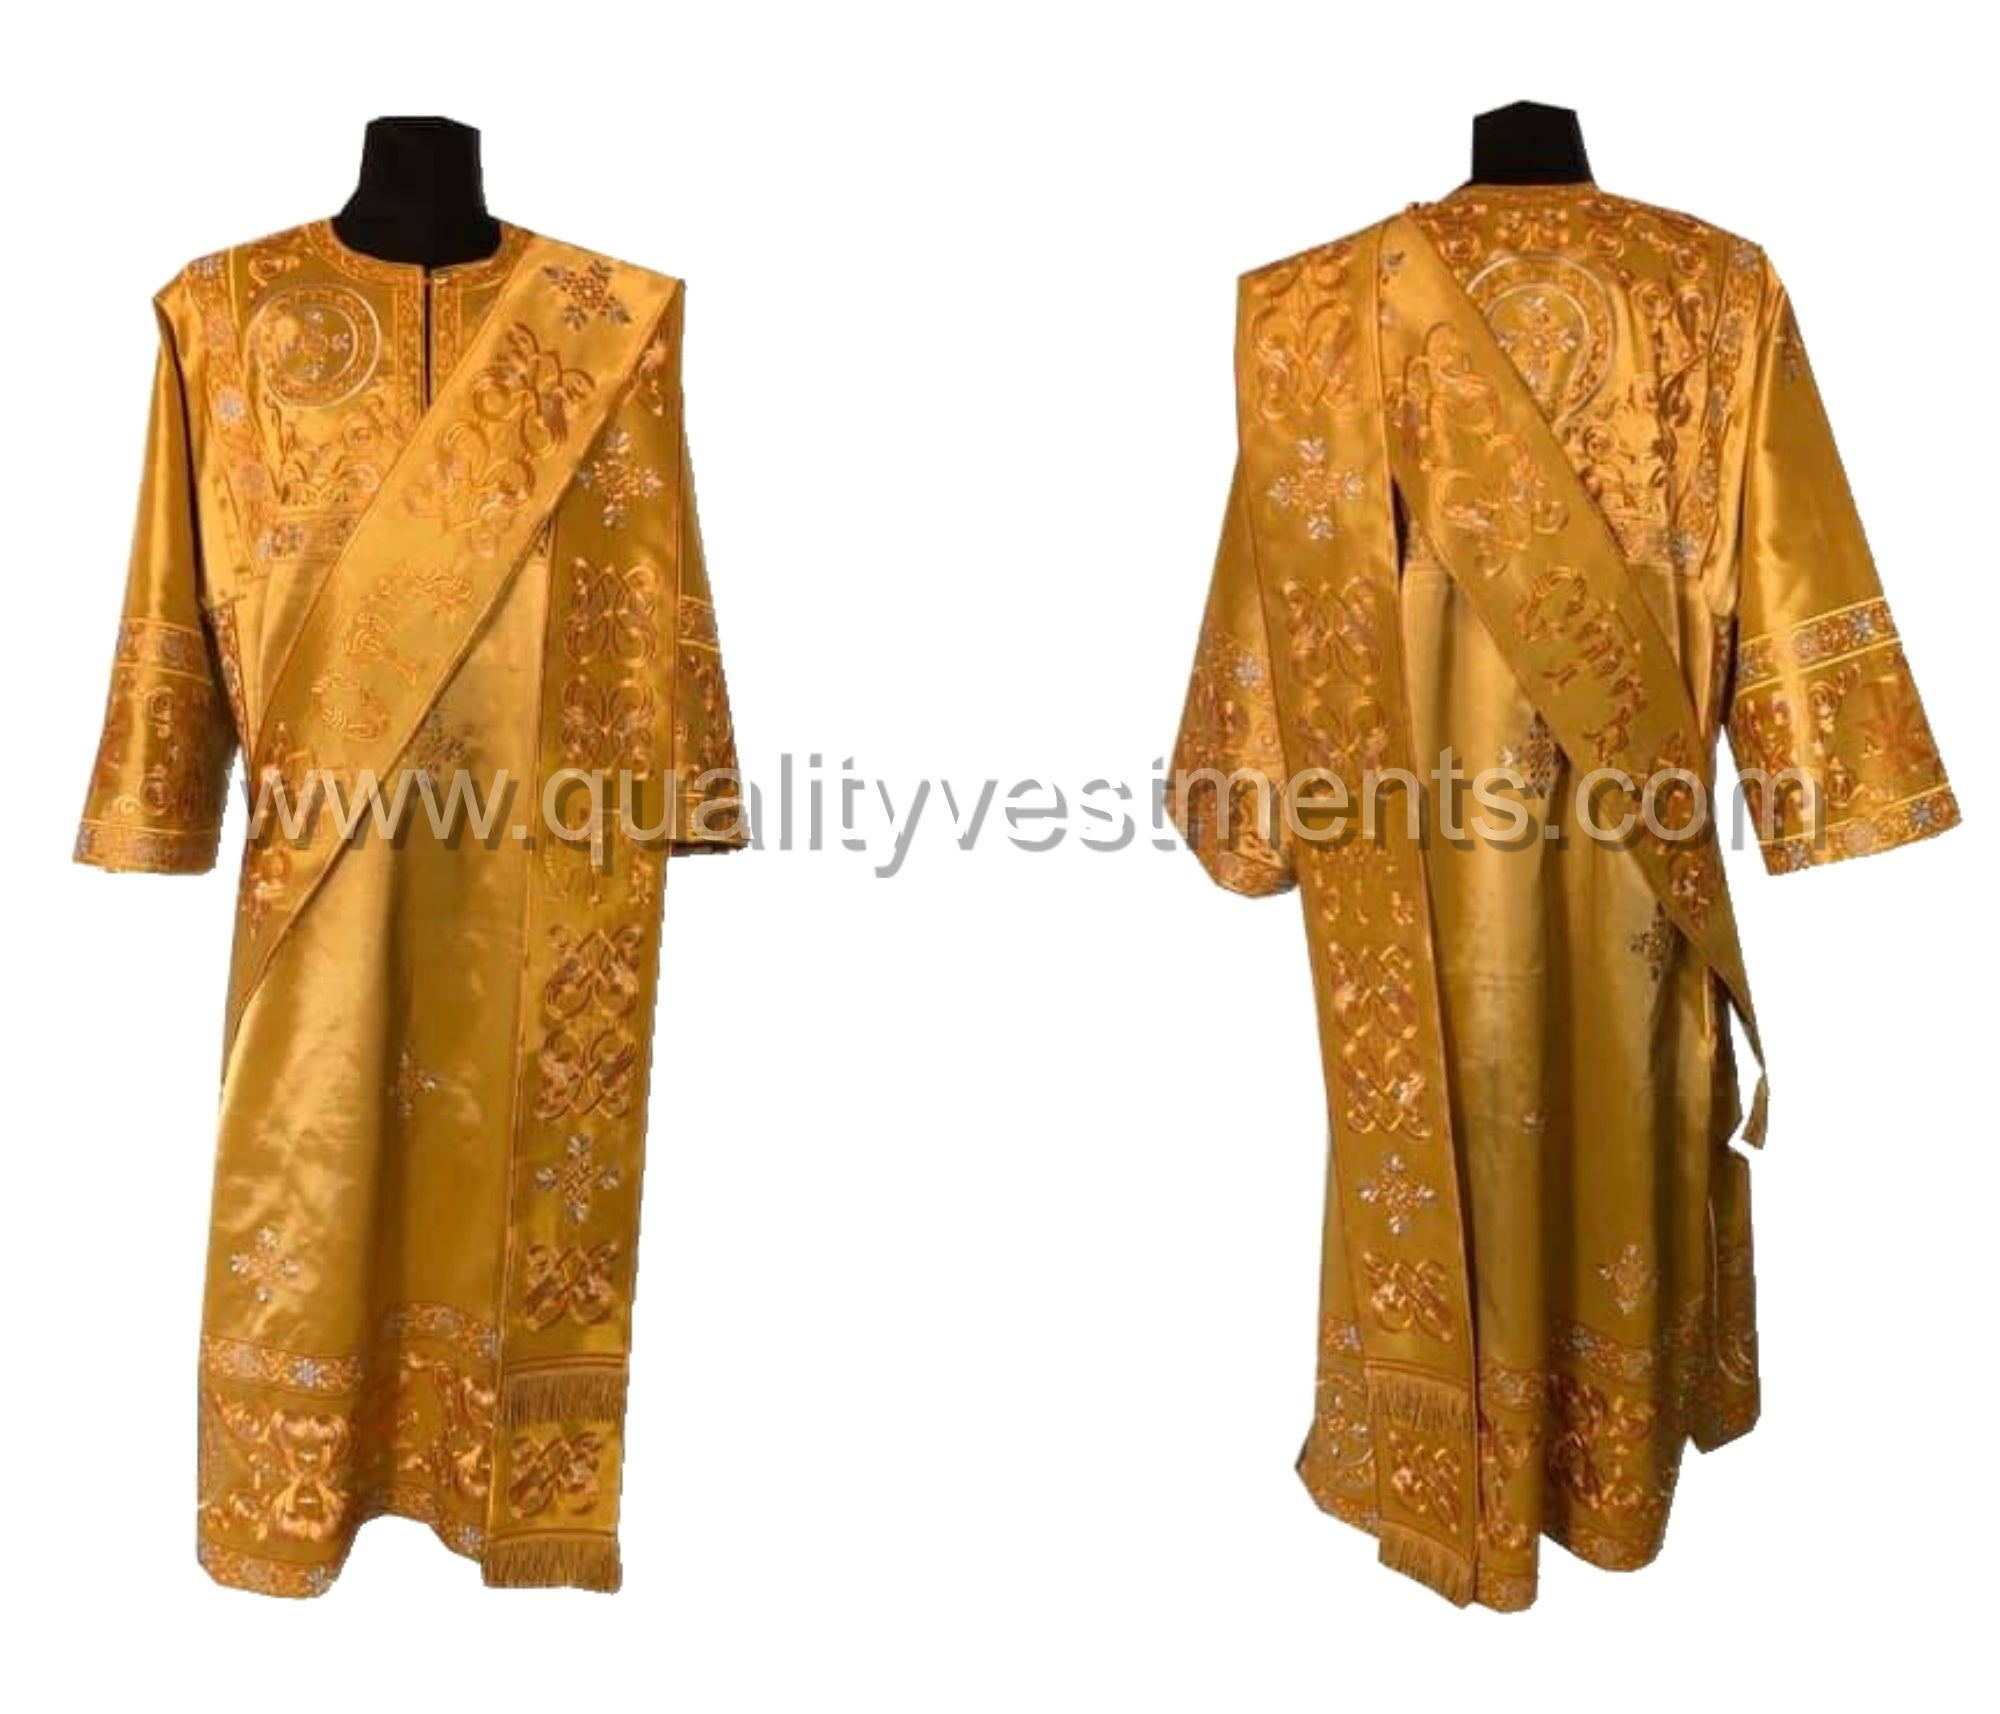 Gold ProtoDeacon's Embroidered vestment LIGHTWEIGHT TO ORDER